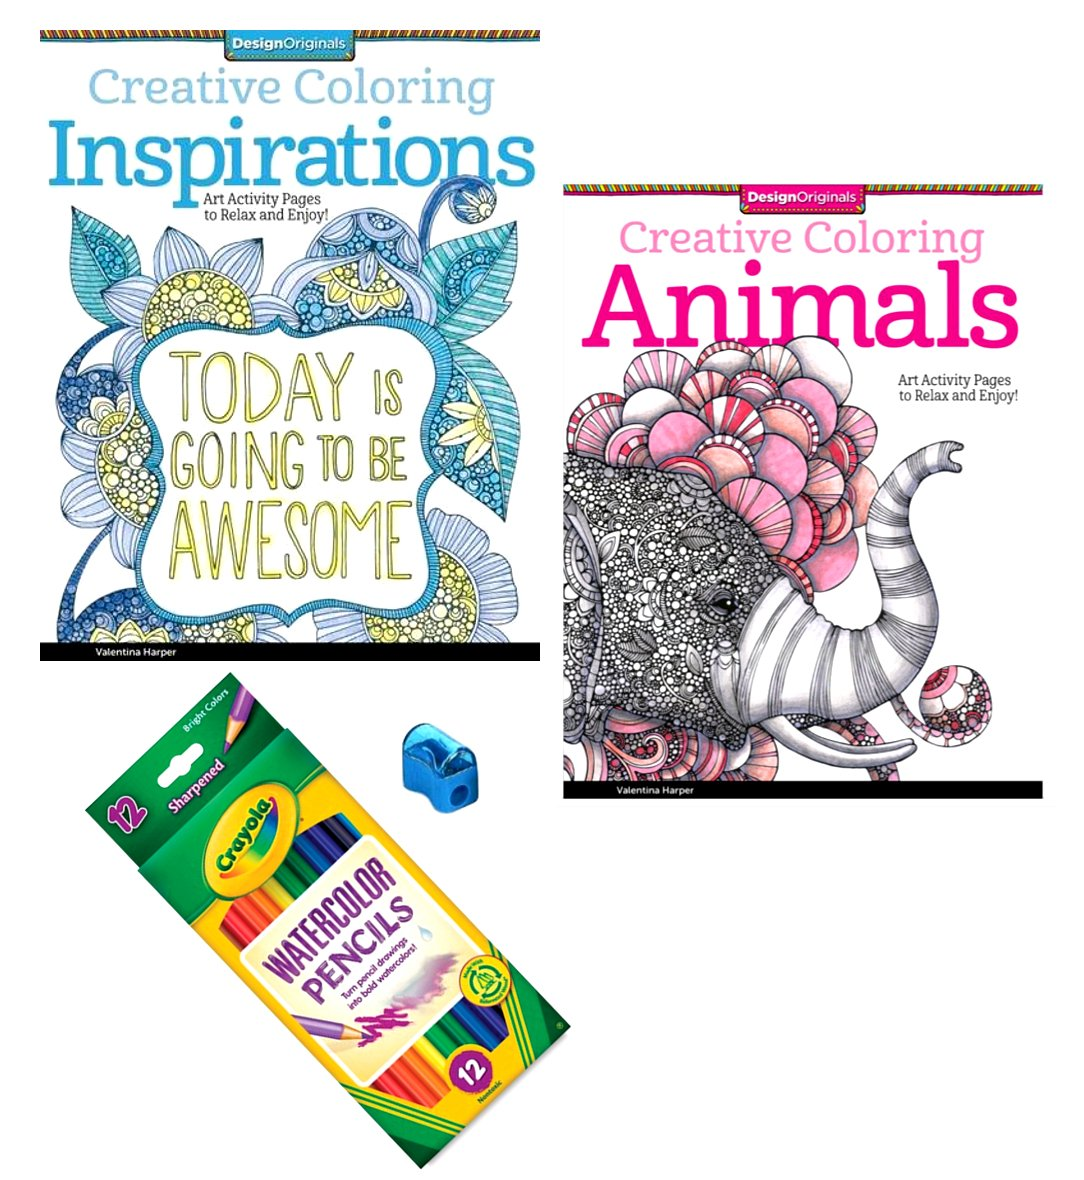 Amazon Animals And Inspirations Coloring Book For Adults 4 Piece Bundle 2 Books 24 Colored Pencils Sharpener Toys Games